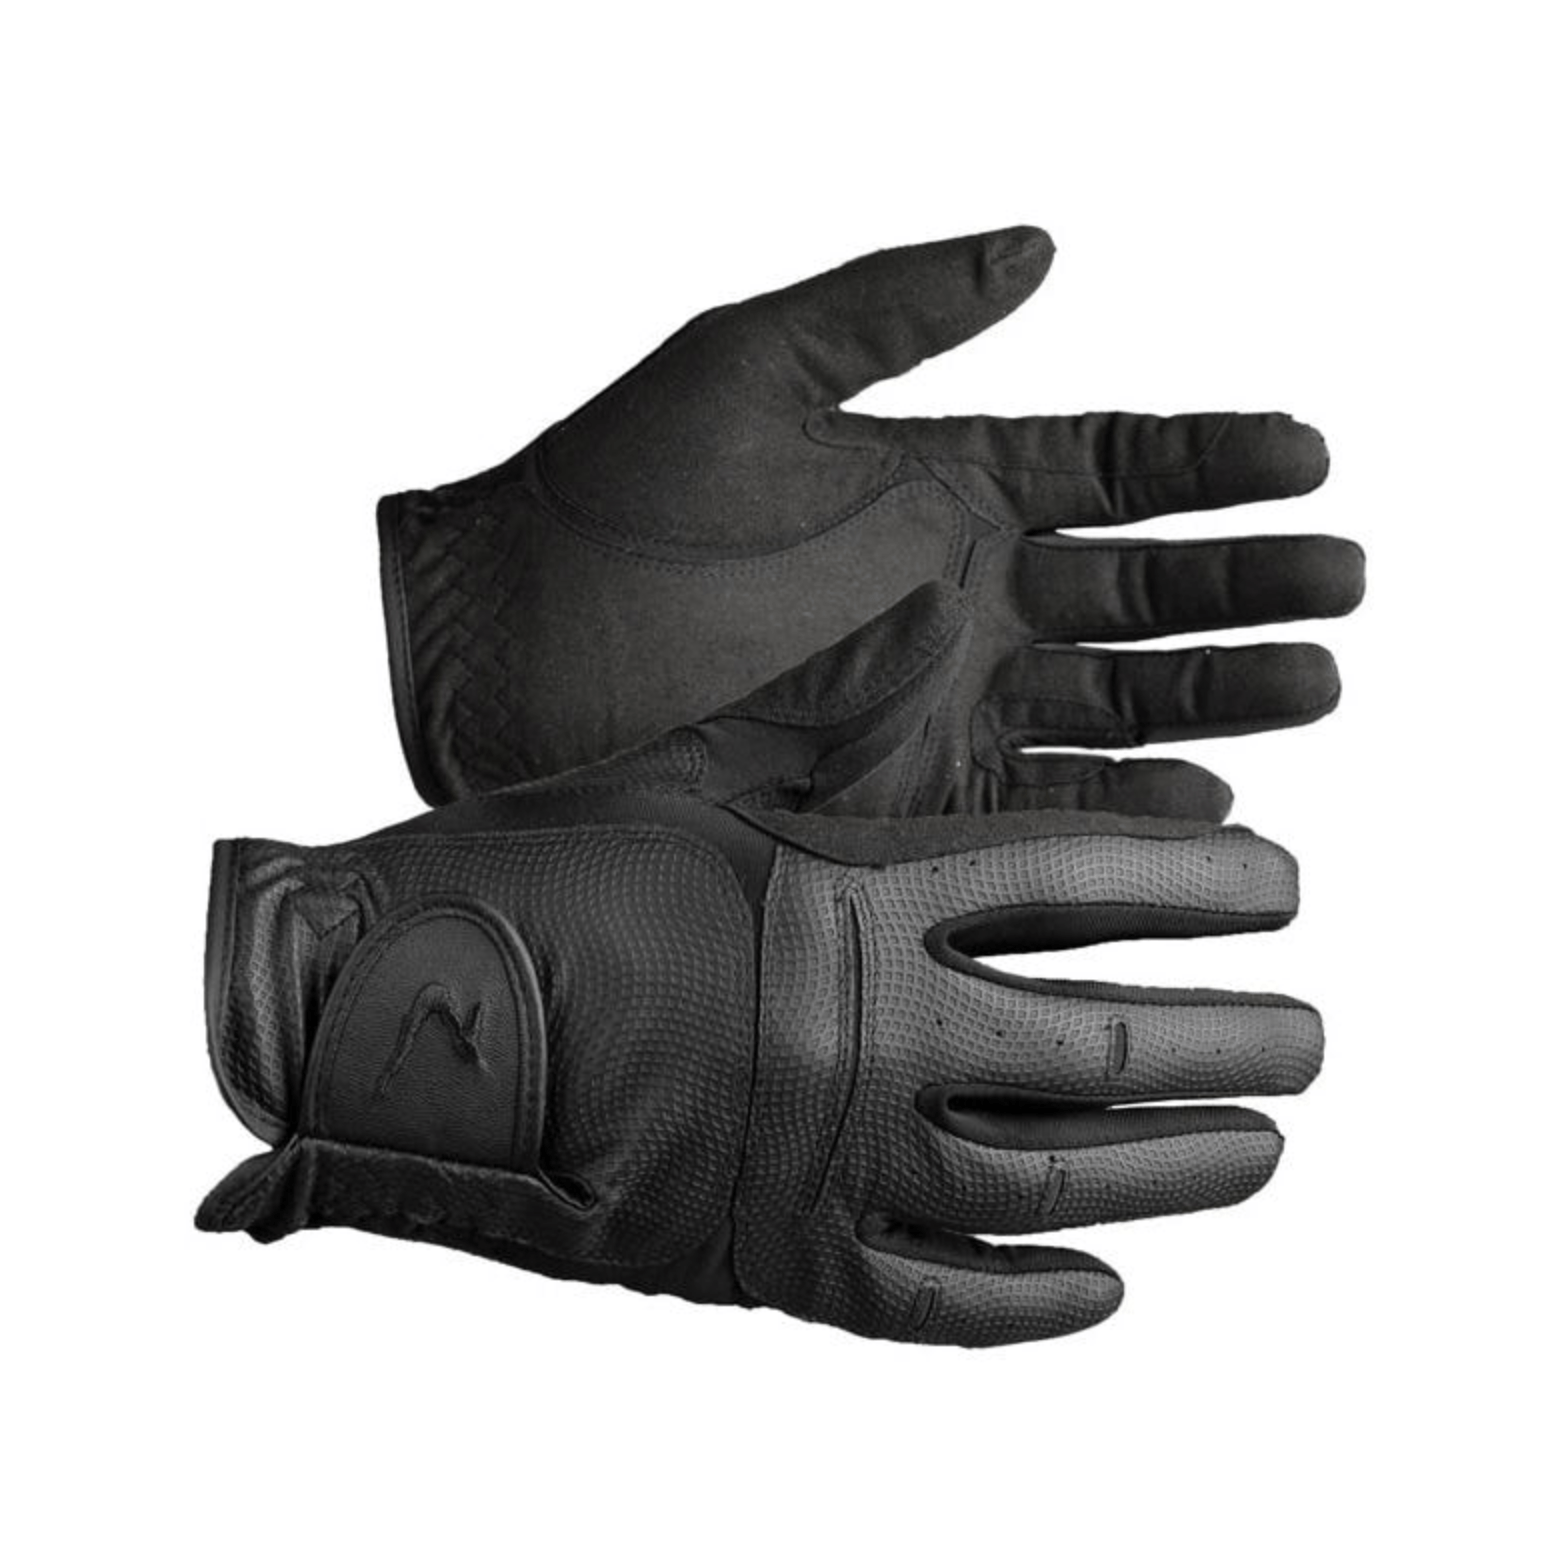 Horze Gloves XXXS/XS / BLACK Horze Elisabeth Gloves equestrian team apparel online tack store mobile tack store custom farm apparel custom show stable clothing equestrian lifestyle horse show clothing riding clothes horses equestrian tack store